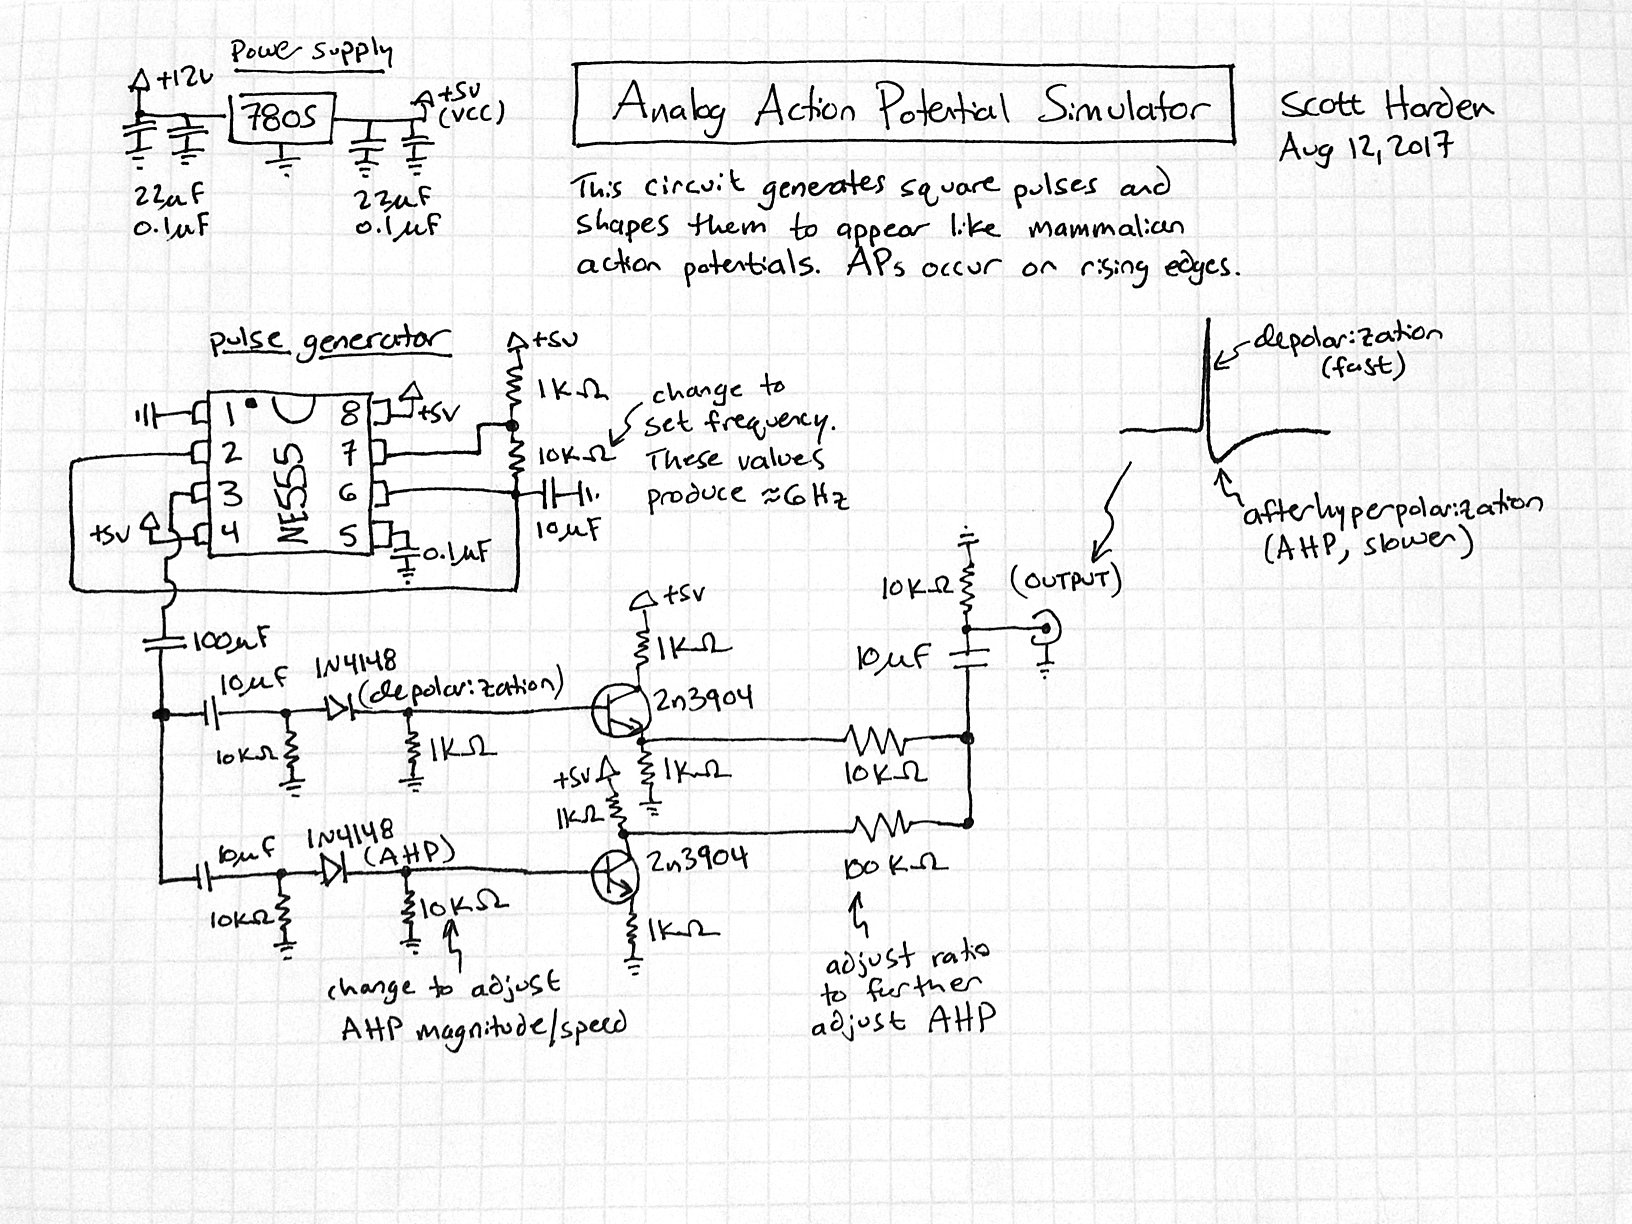 General Astable 555 Timer Ic Flasher Circuit Diagram The Analog Action Potential Simulator I Came Up With Creates A Continuous Series Potentials This Is Achieved Using Specifically